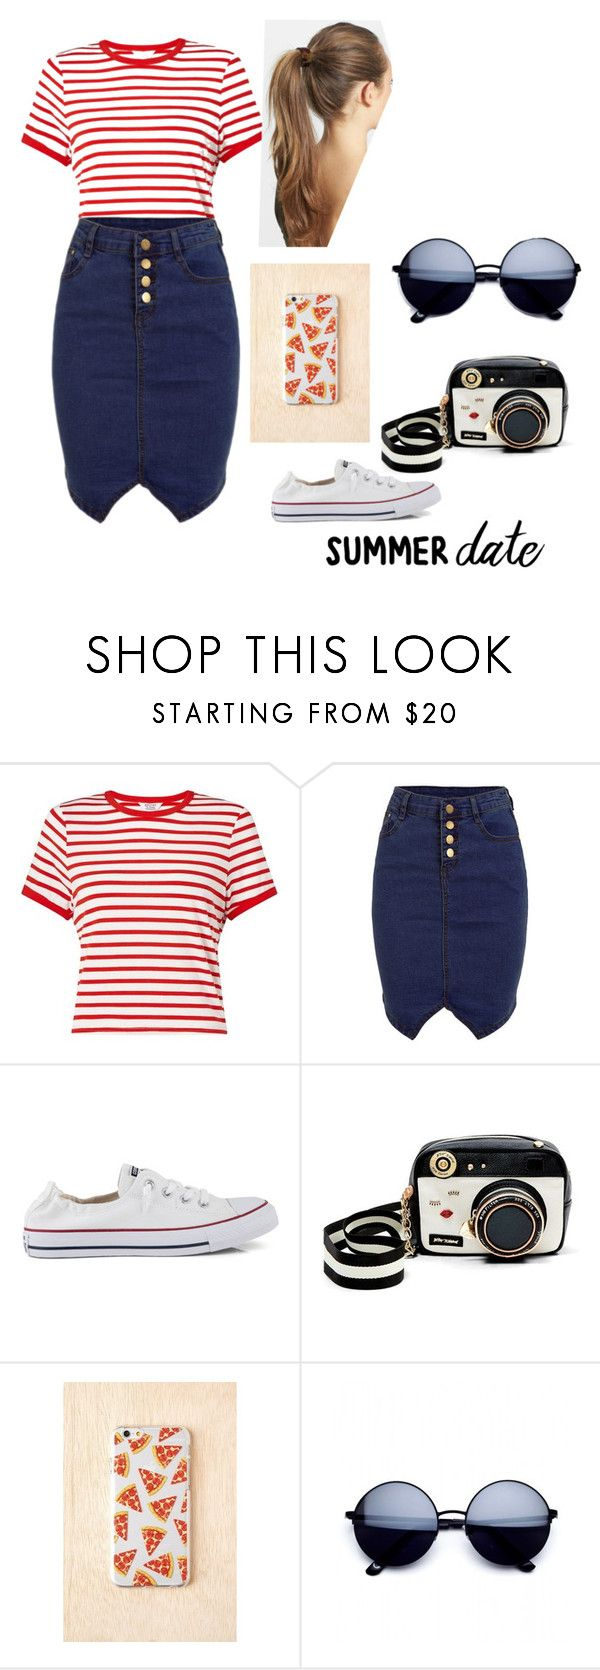 """""""Apostolic Pentecostal State fair outfit"""" by ecord1 ❤ liked on Polyvore featuring Miss Selfridge, Converse, Betsey Johnson, Urban Outfitters, France Luxe, statefair, summerdate and apostolicpentecostal"""